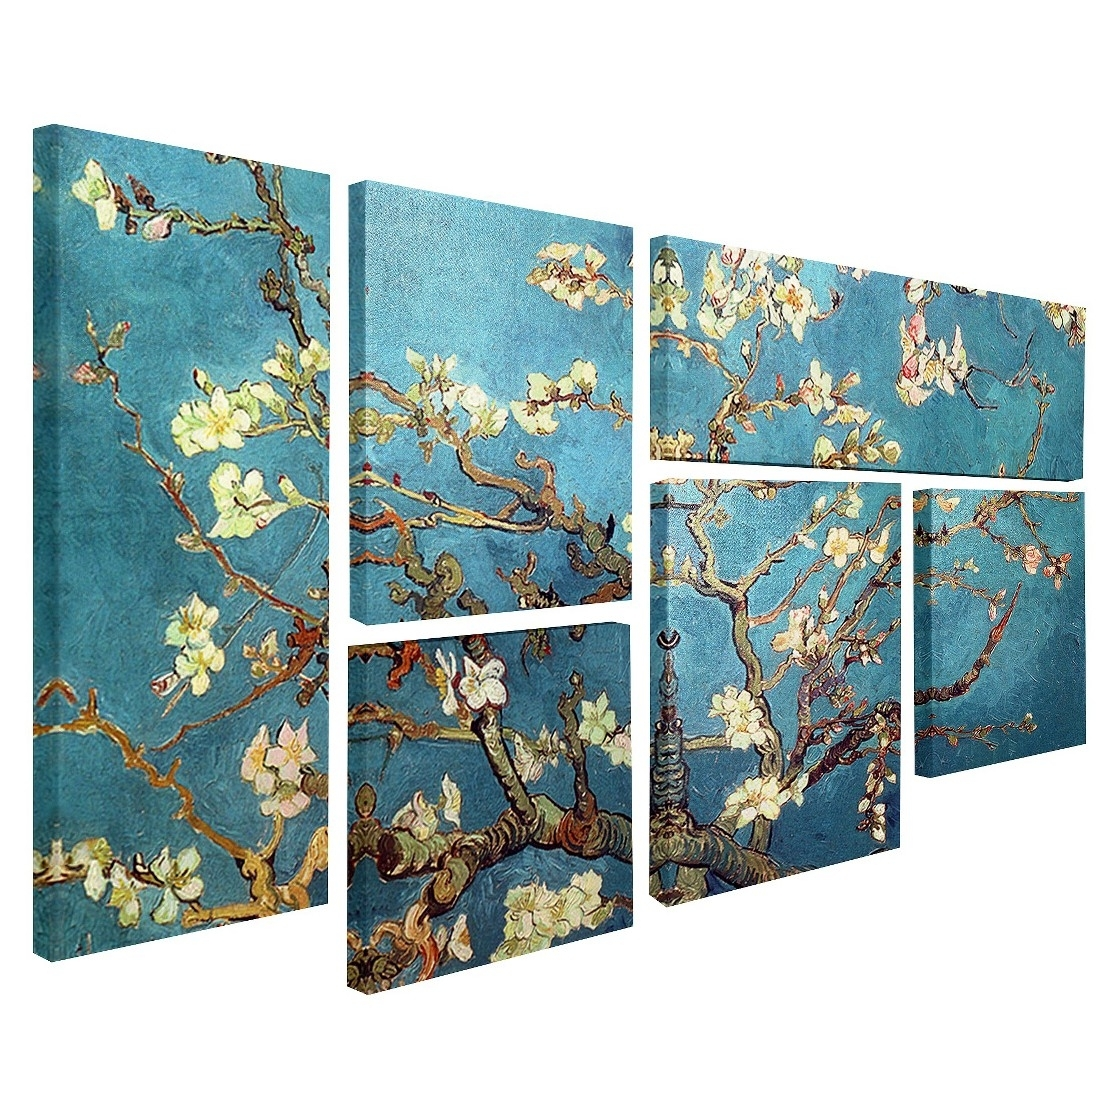 Vincent Van Gogh Multi Piece Wall Art – 'almond Blossoms', | Van Regarding 2017 Almond Blossoms Vincent Van Gogh Wall Art (View 4 of 20)